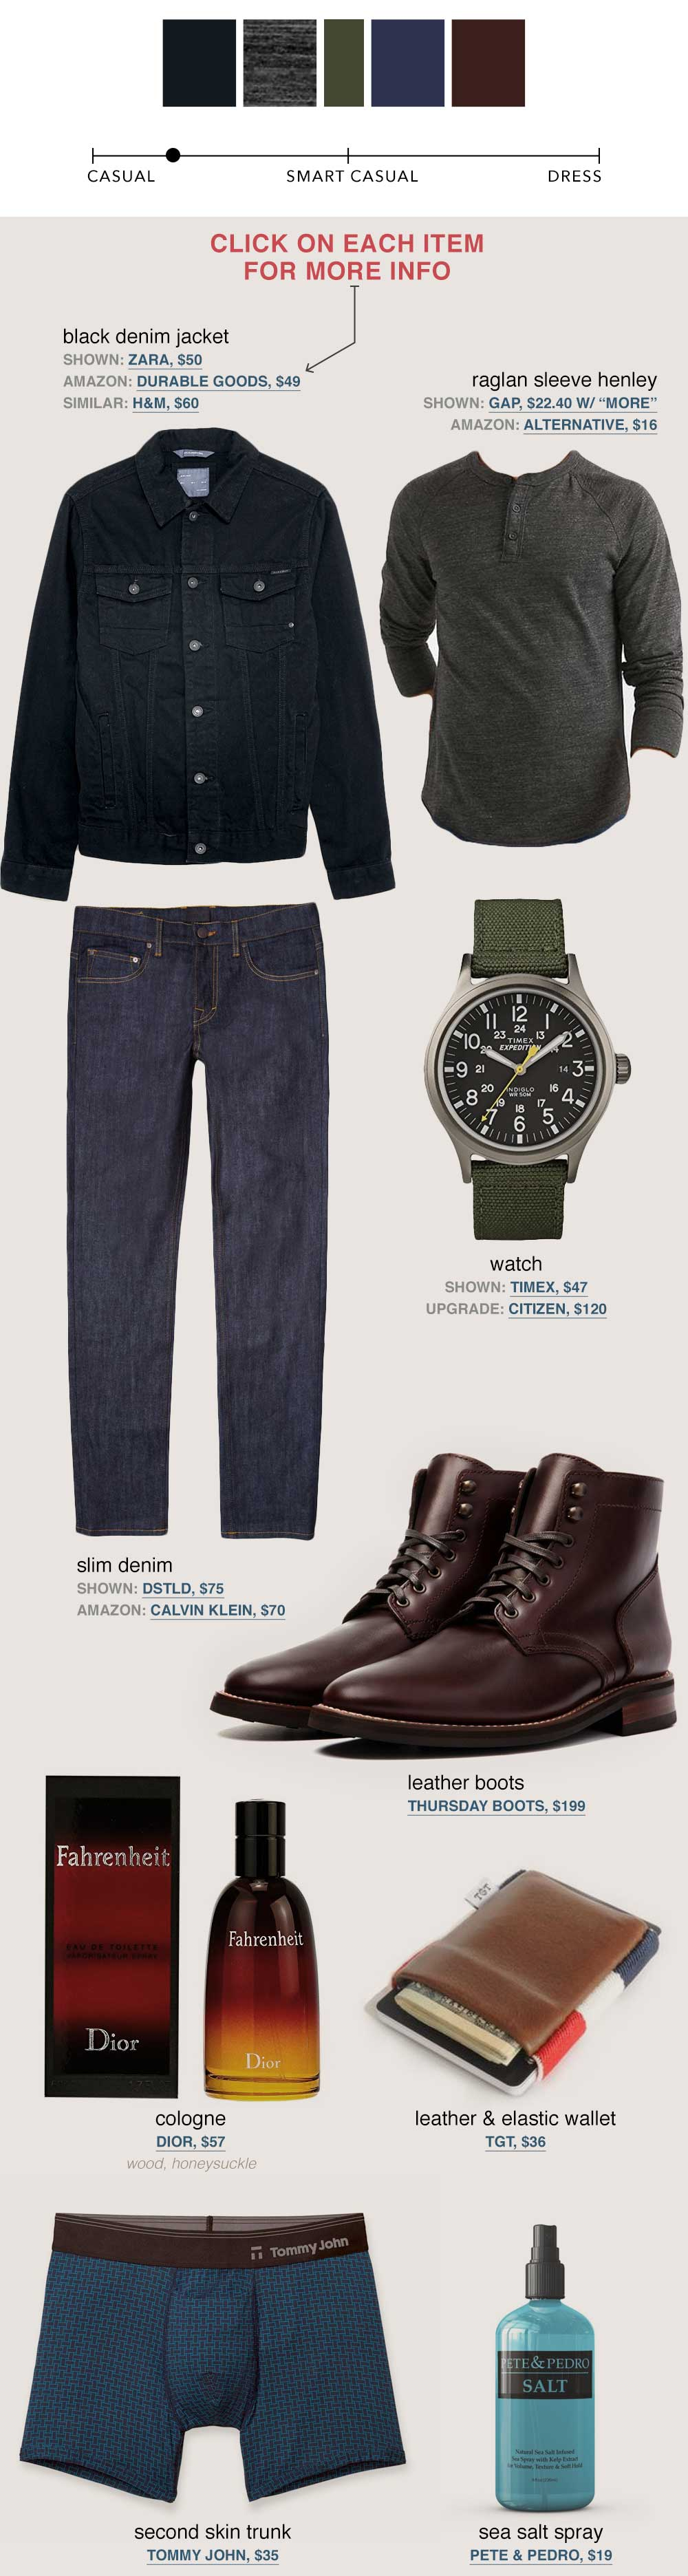 black denim jacket gray henley brown boots thursday boots dstld jeans   men's fall fashion outfit ideas